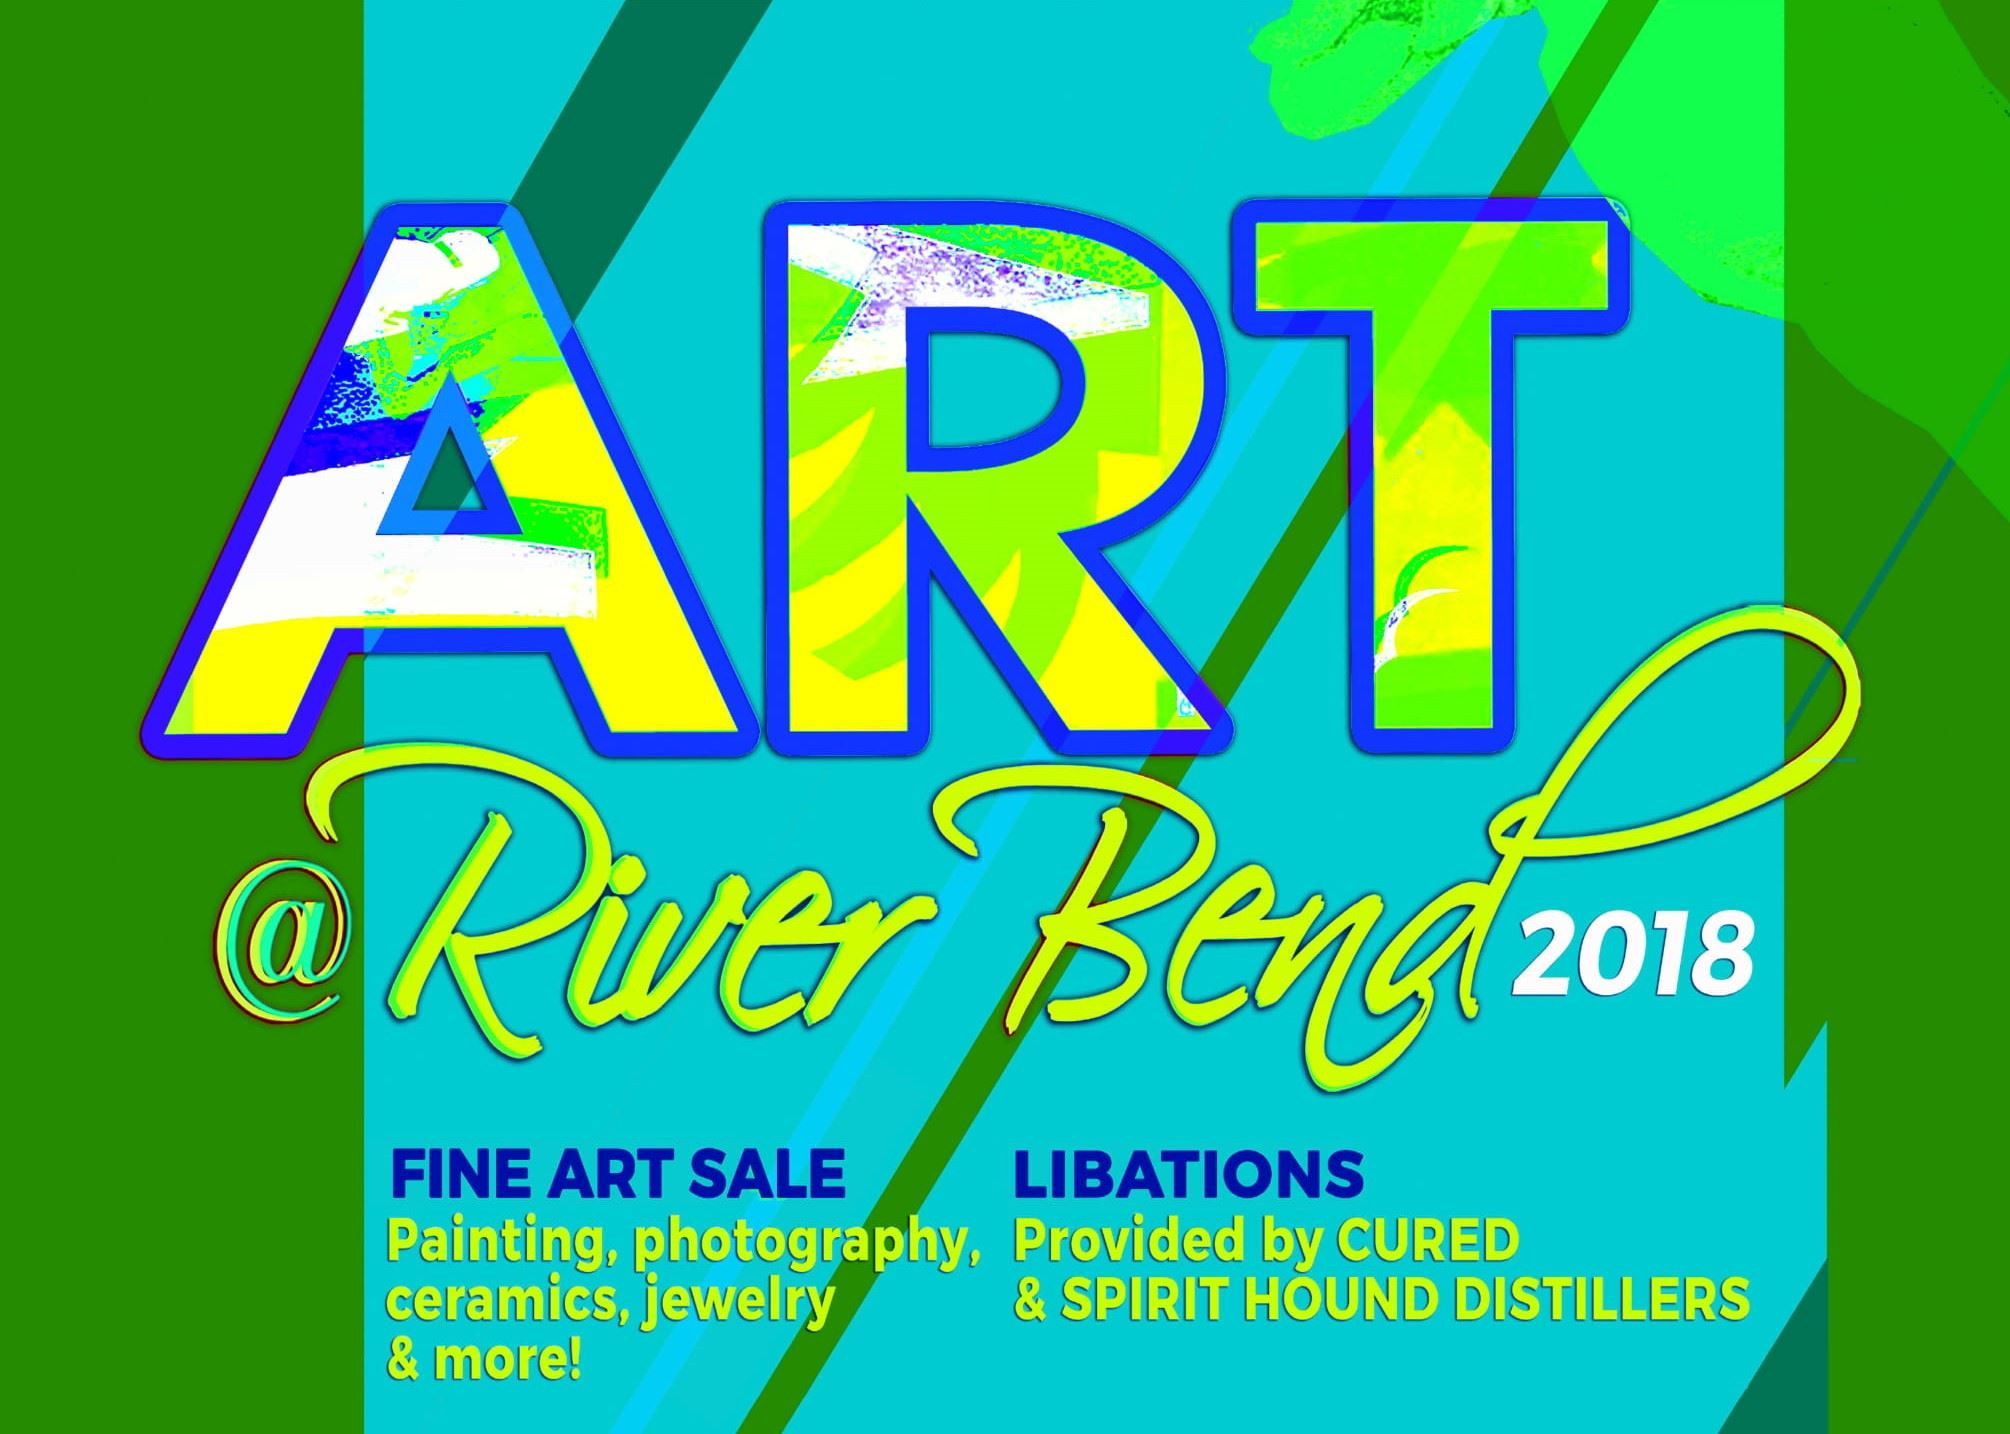 Art at River Bend 2018